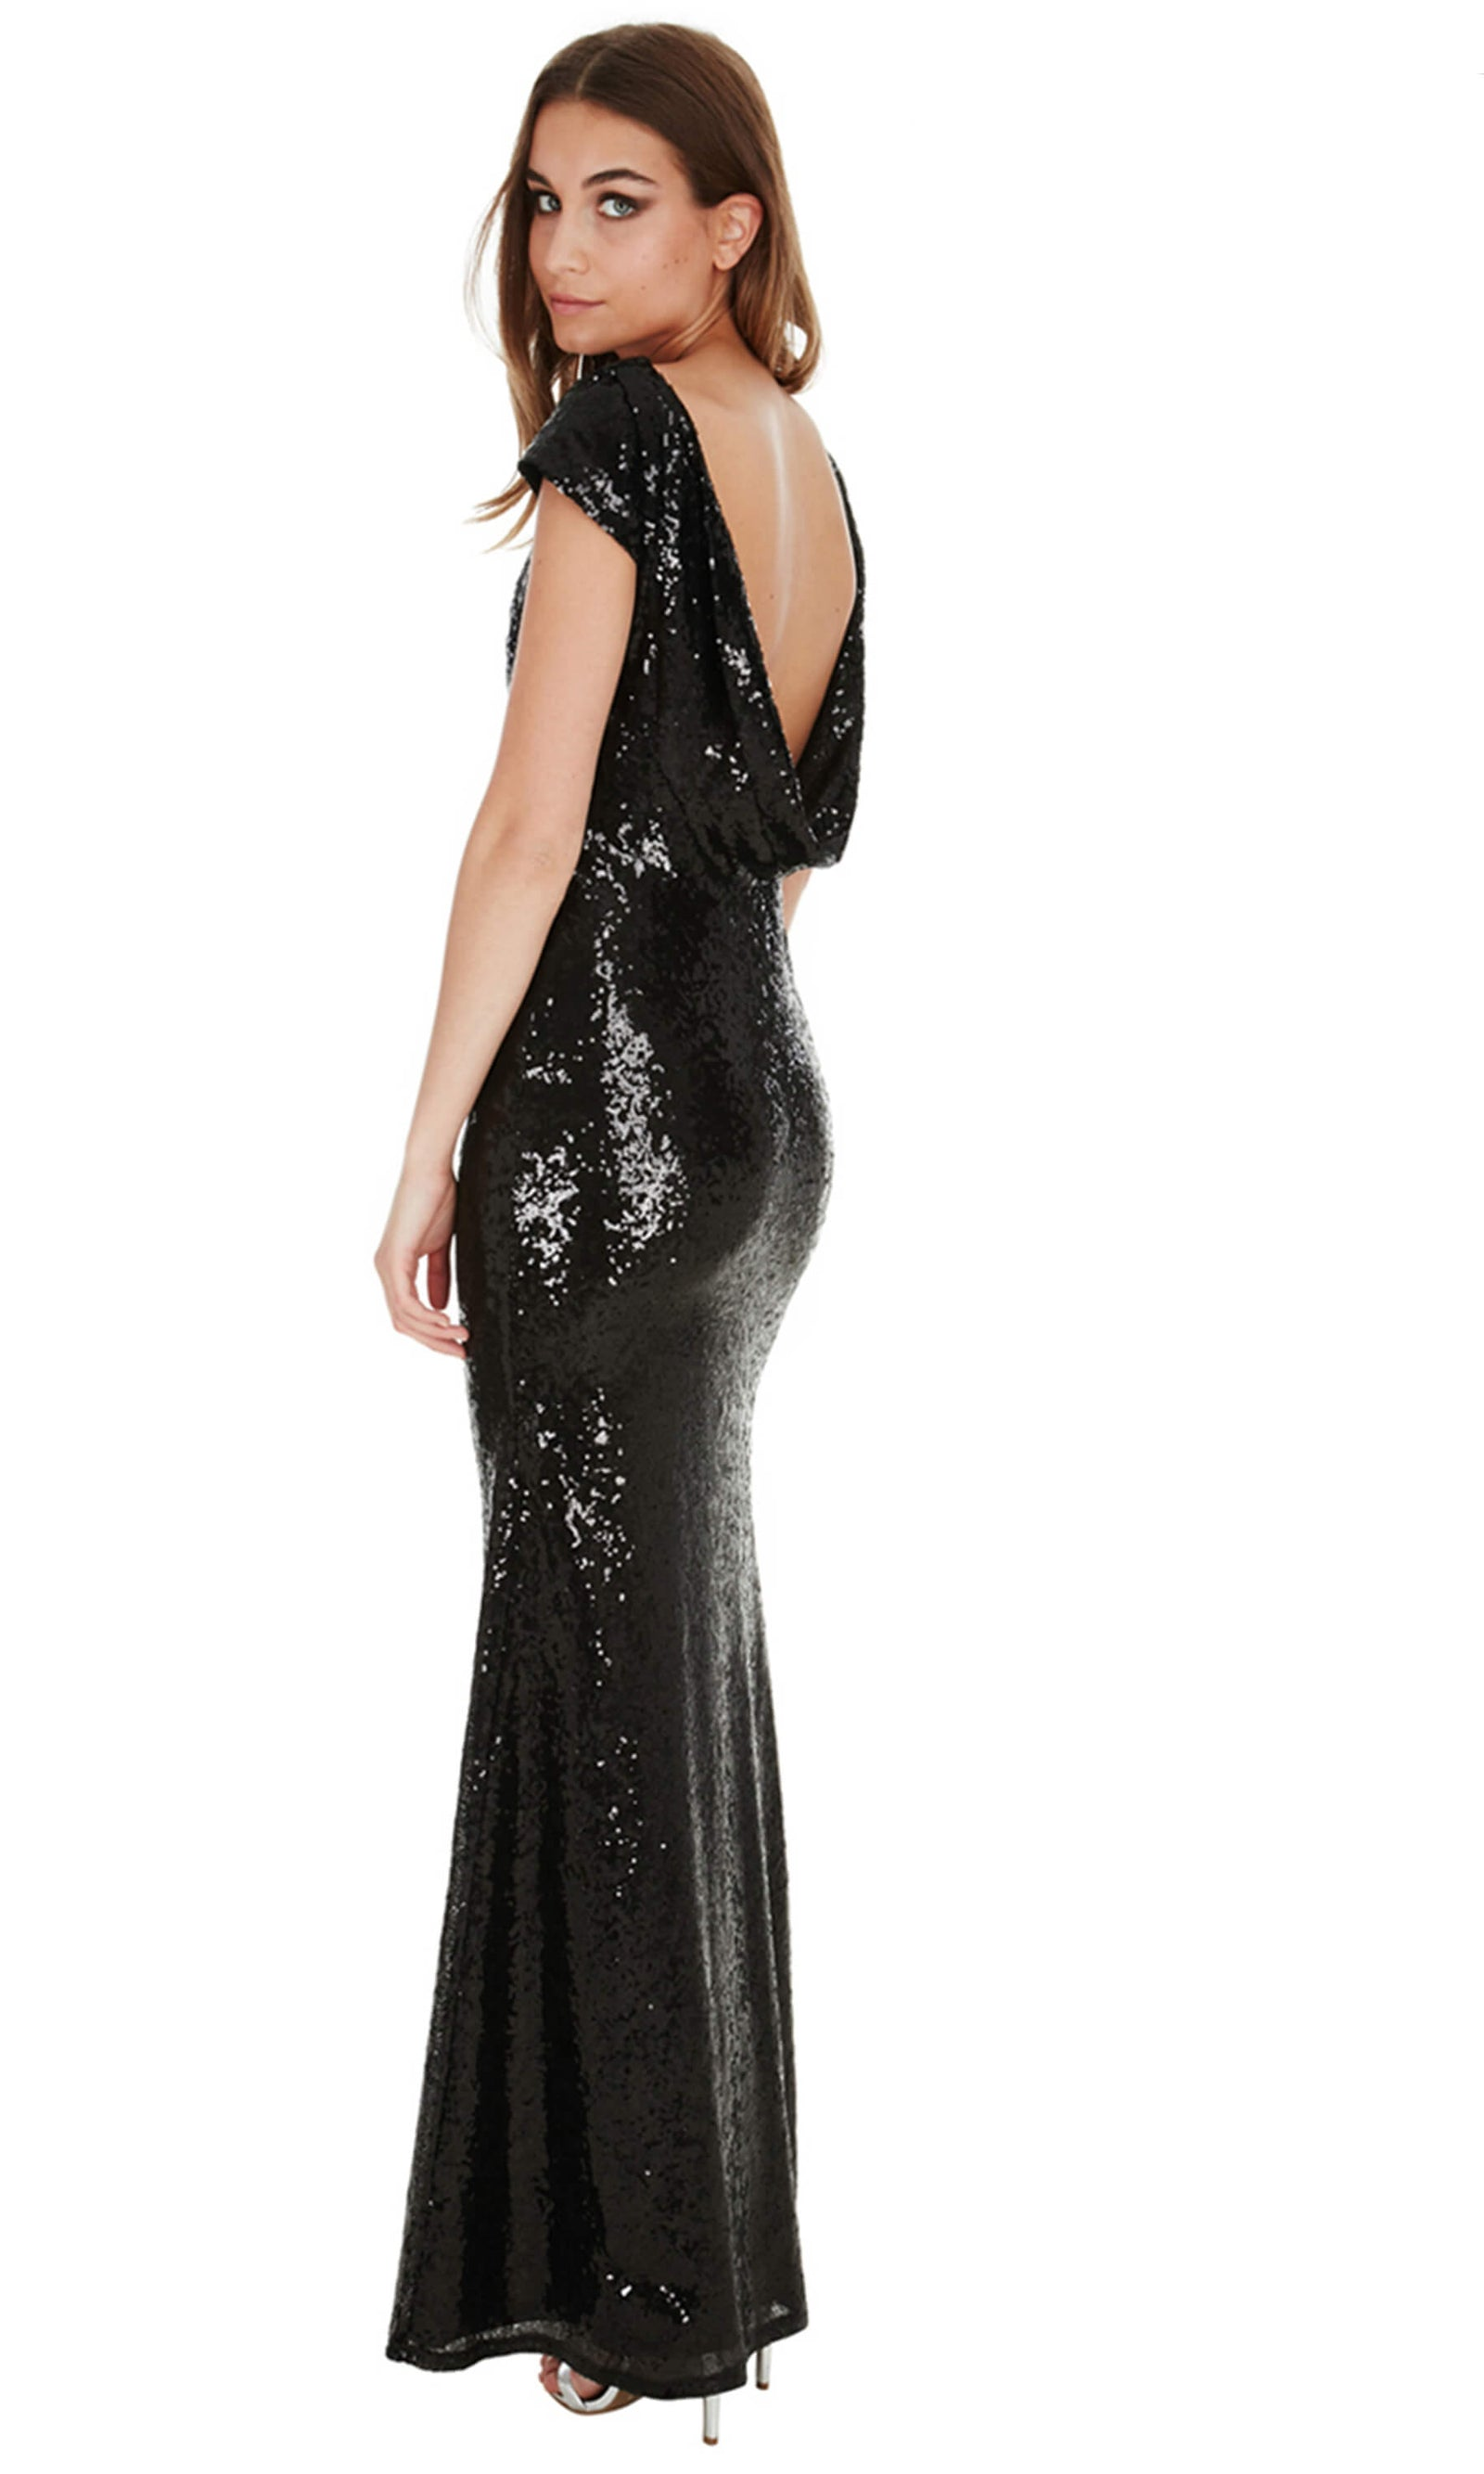 DR592 Black City Goddess Sequin Cowl Back Dress